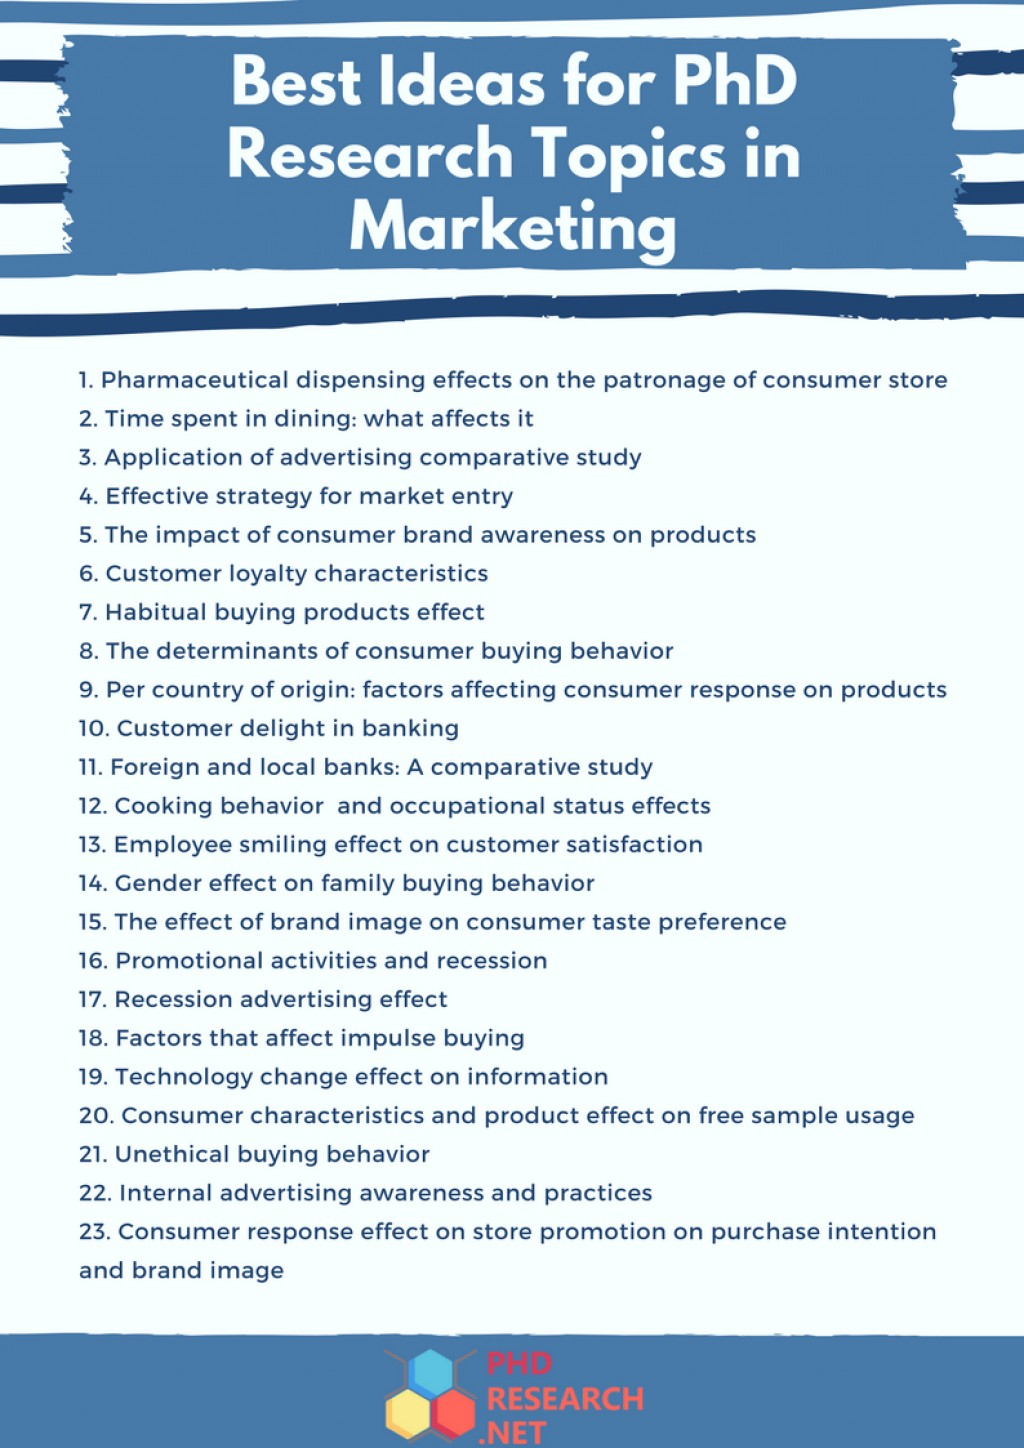 003 Best Research Paper Topics For Marketing Ideas Phd Unique Large